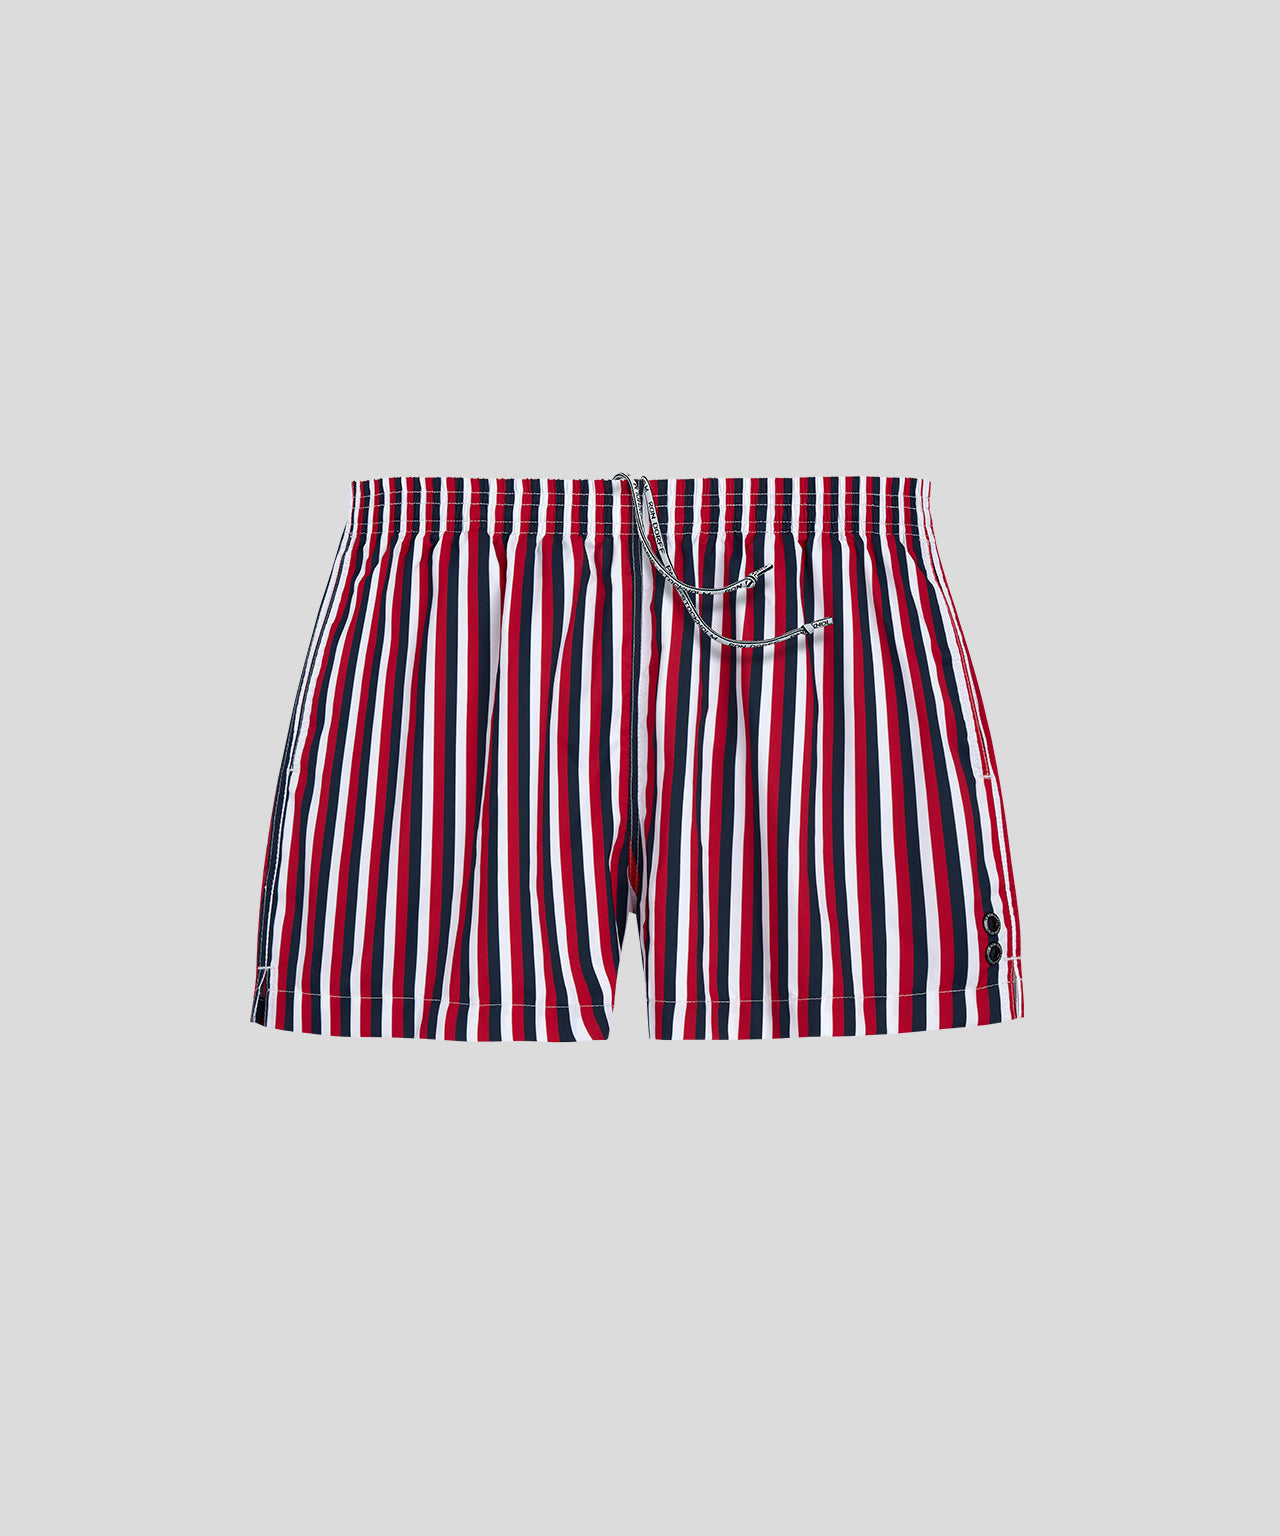 Swim Shorts Vertical Thin Stripes - white/navy/red